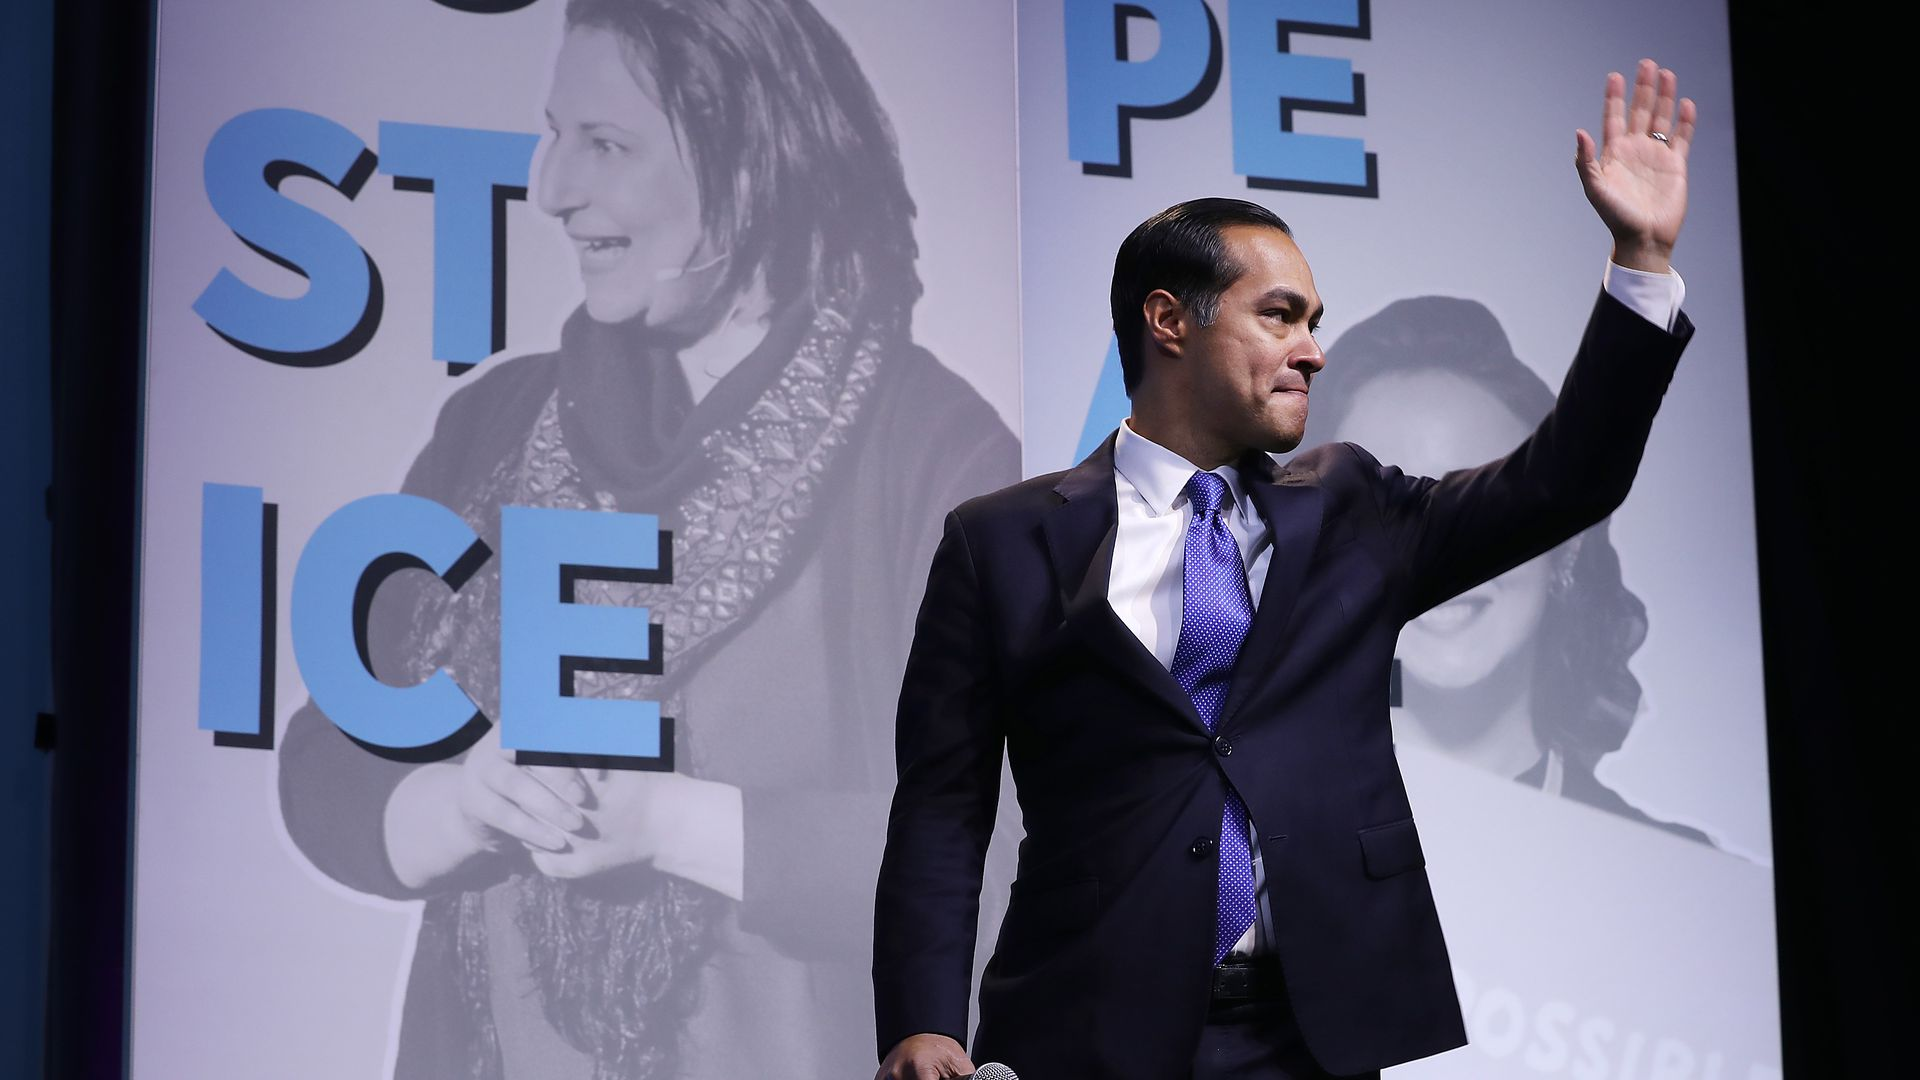 Julian castro waves at a crowd.